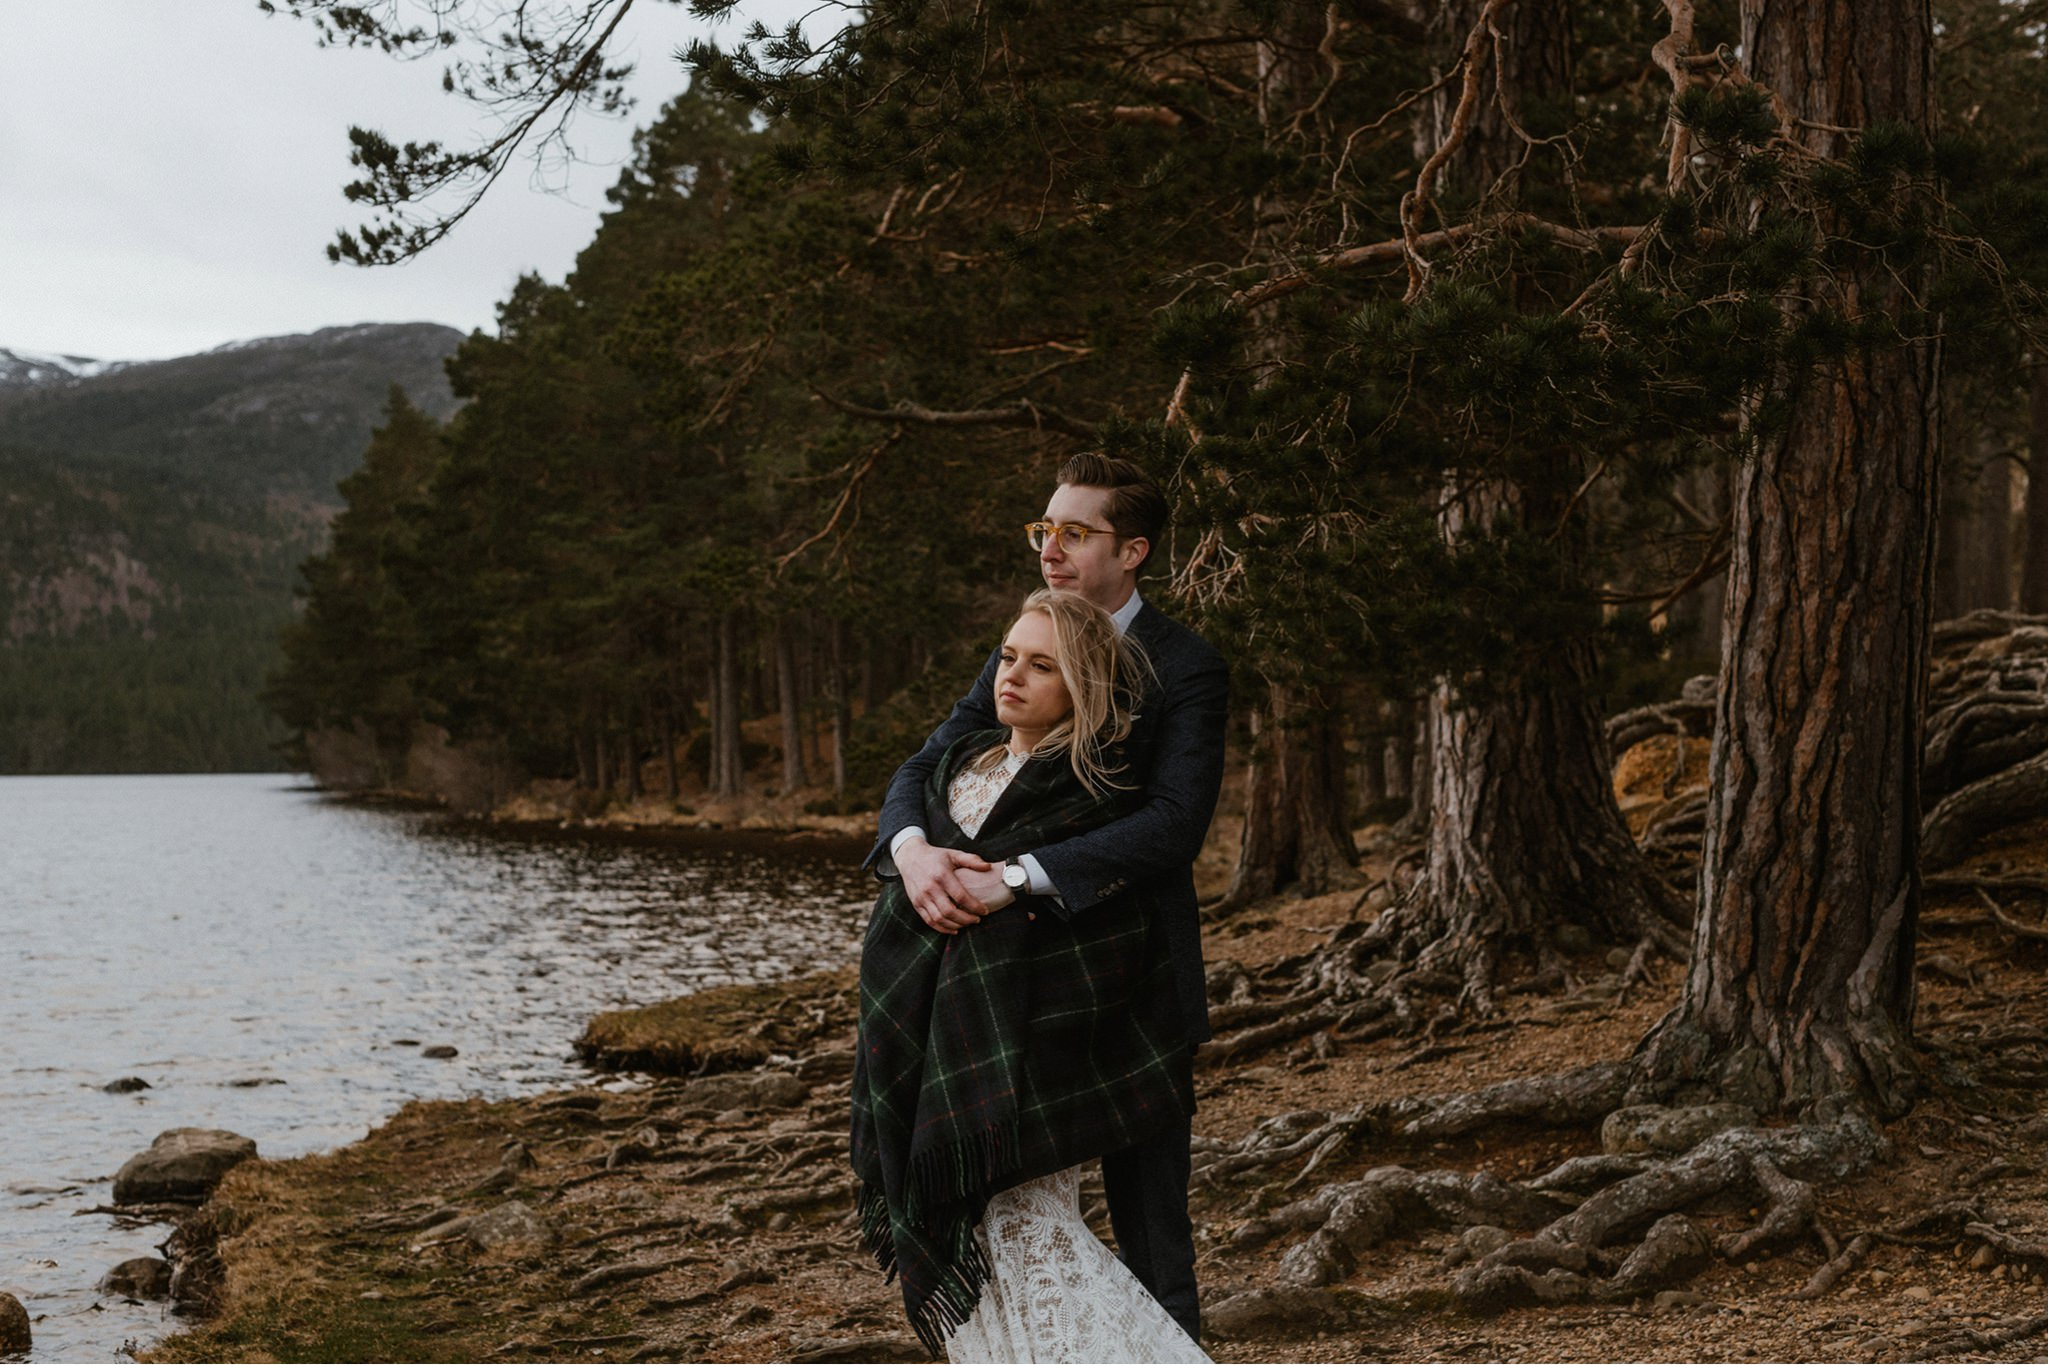 Loch-an-Eilein elopement wedding venue Cairngorms Scotland